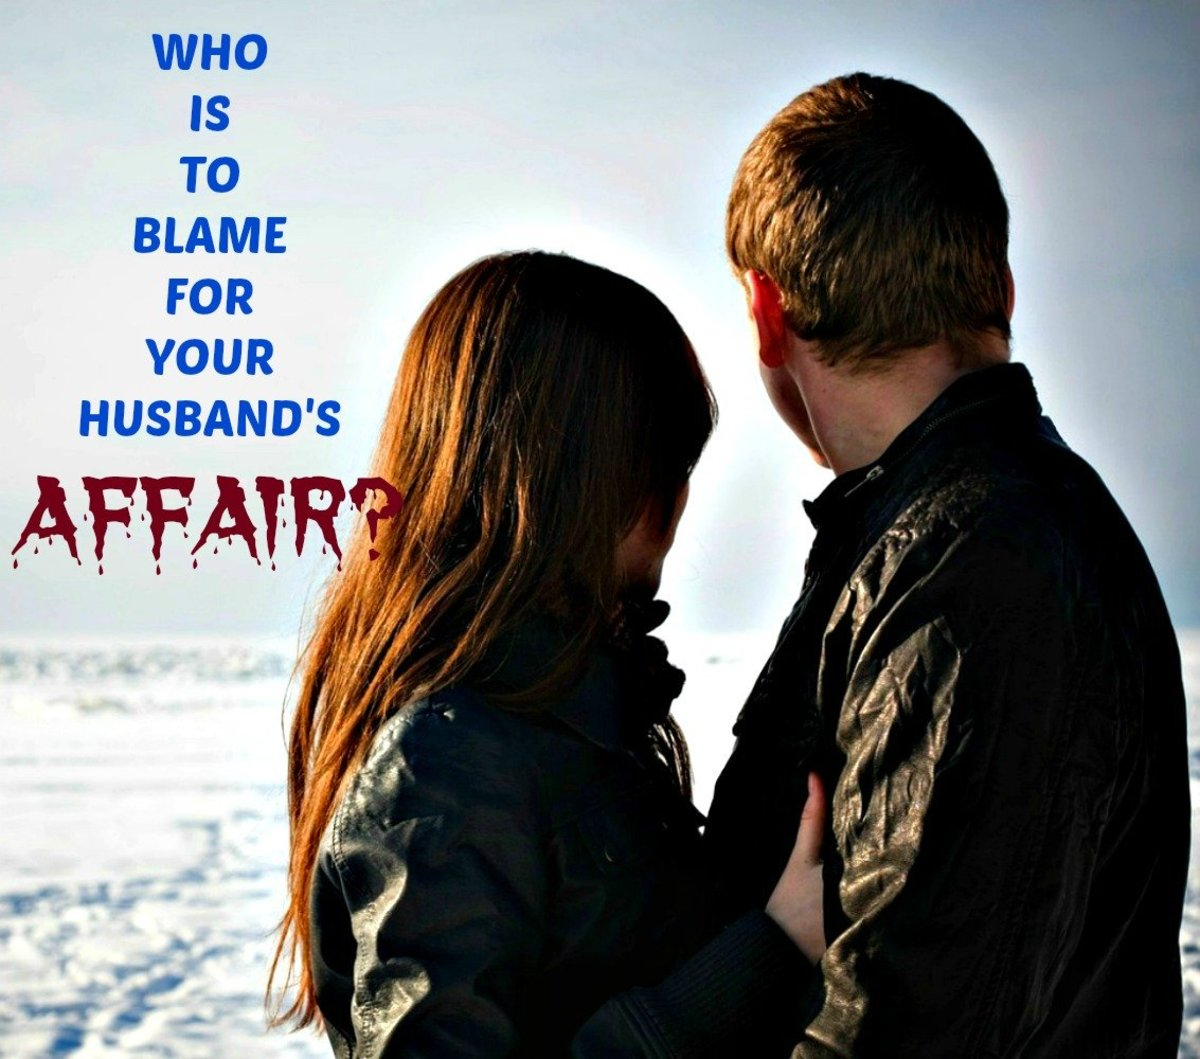 Who Is to Blame for Your Husband's Affair?